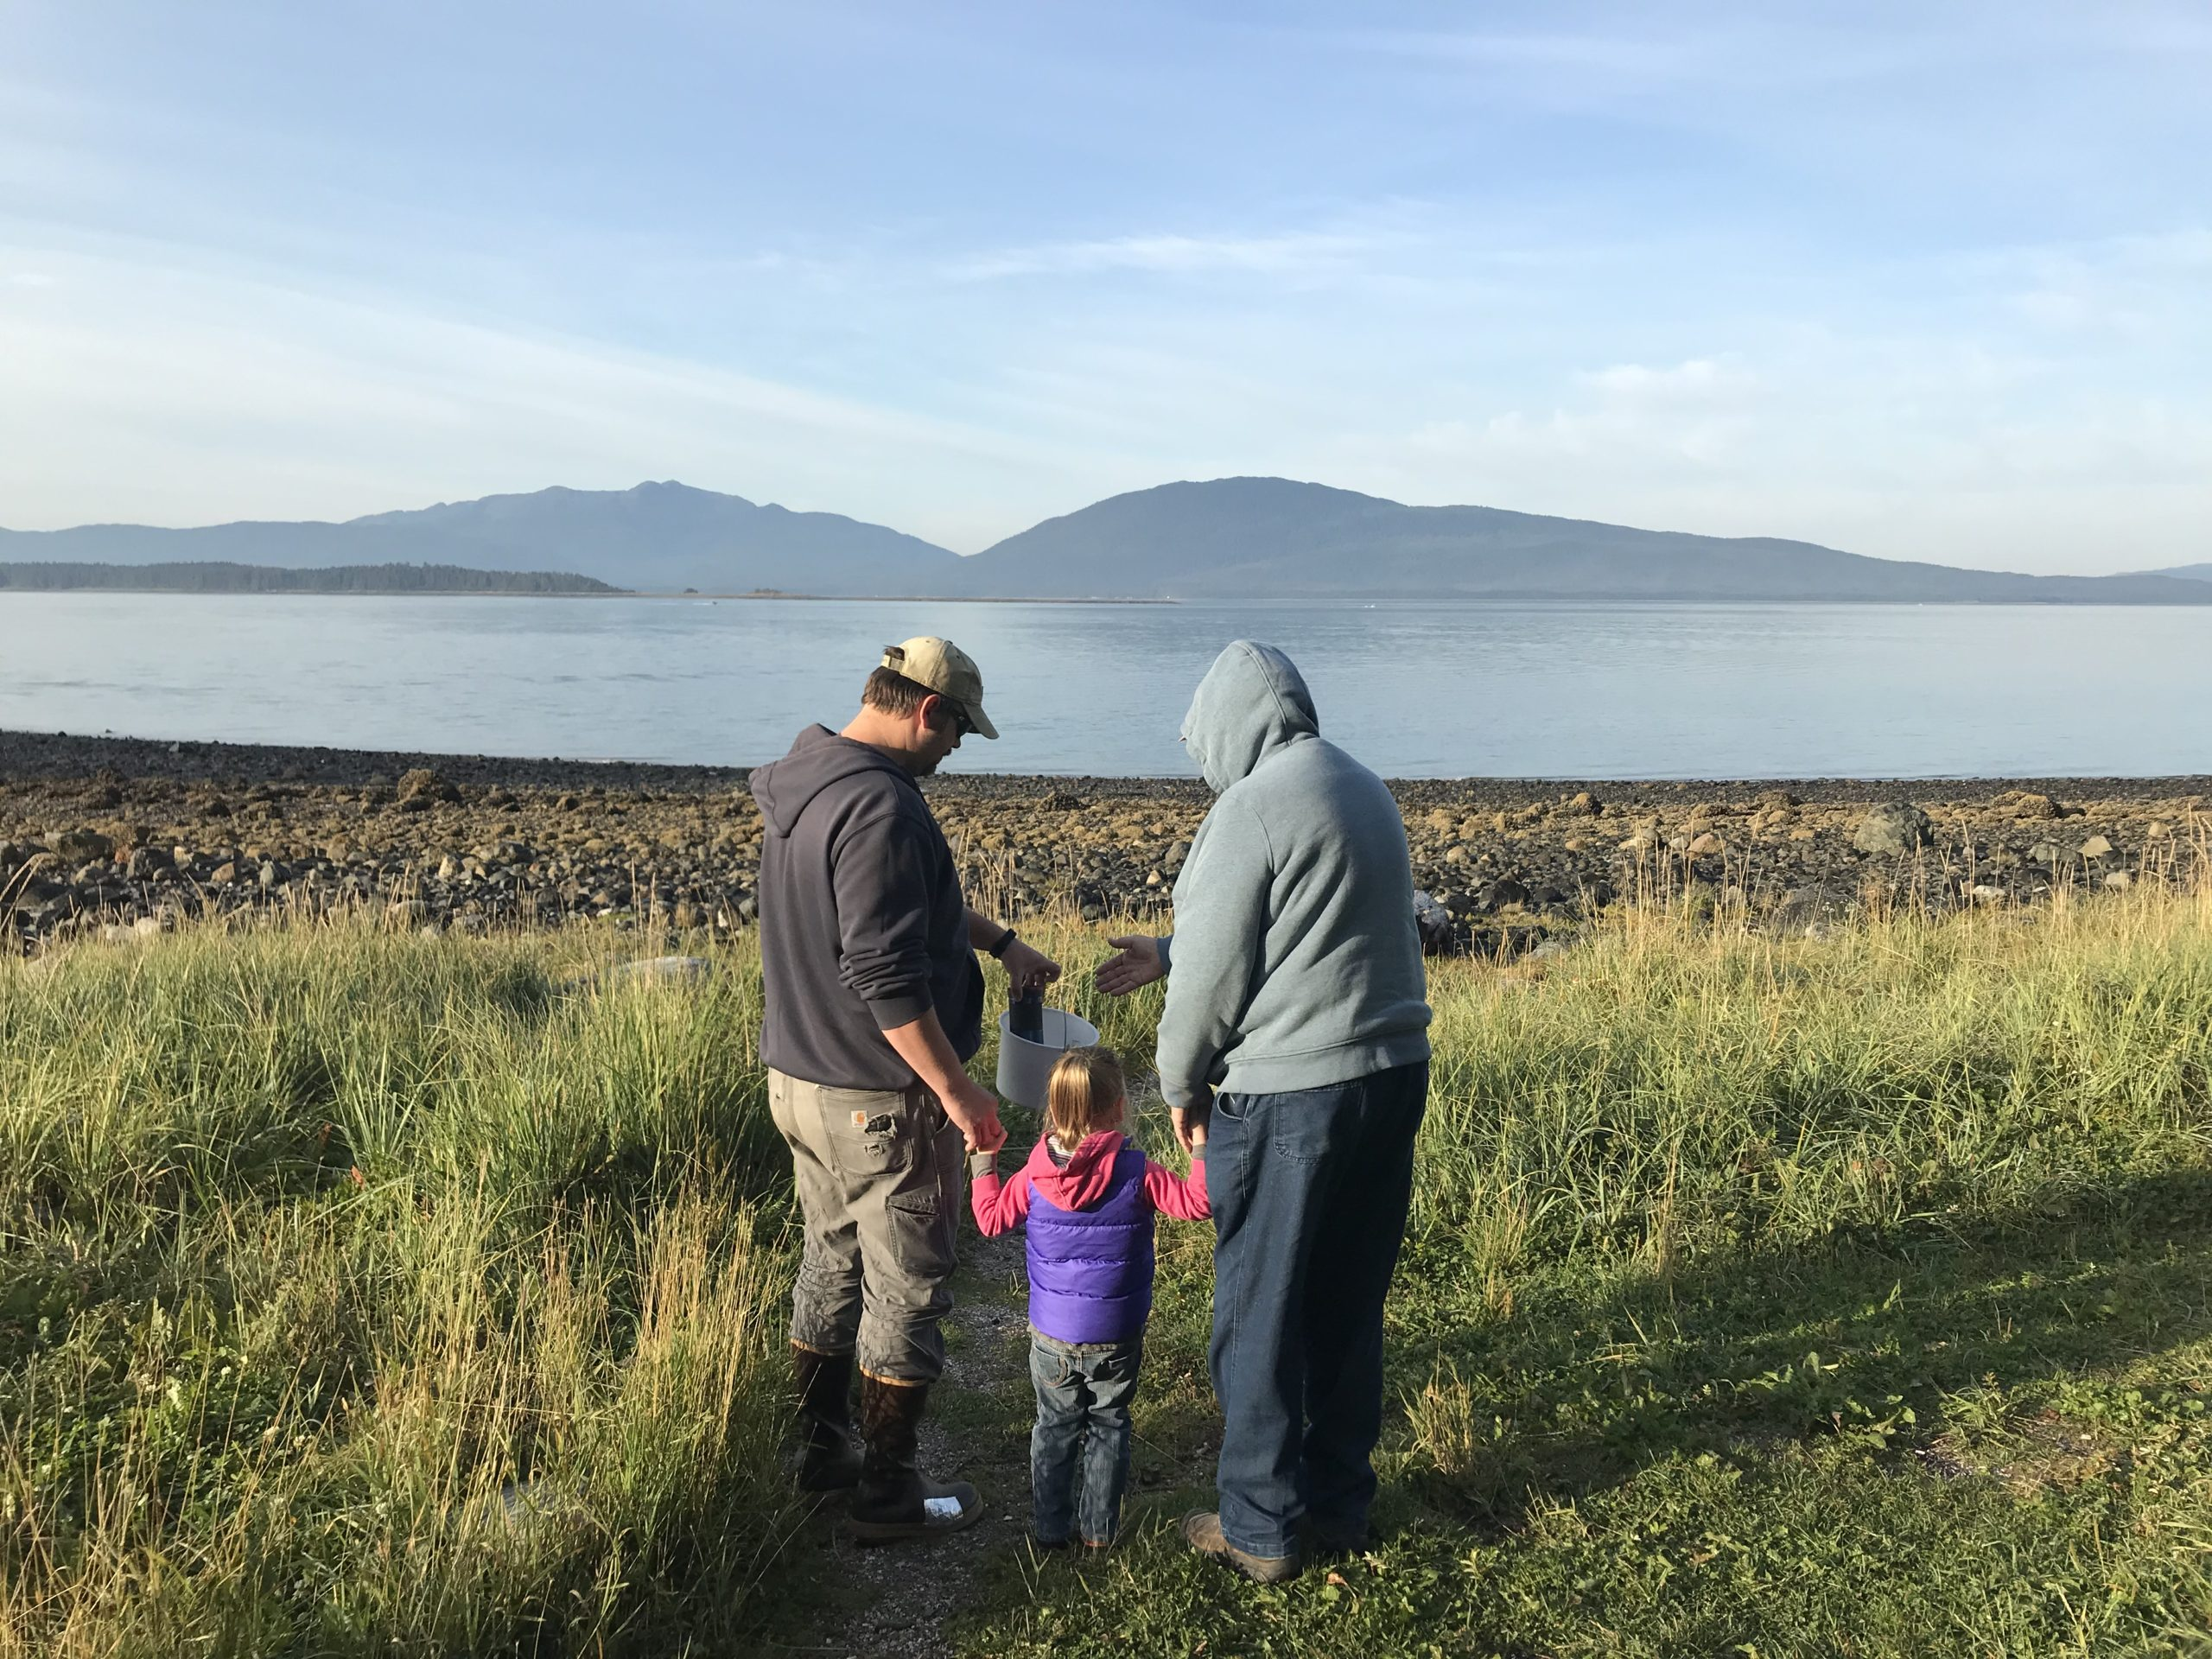 A family with a young child looks at a scenic vista